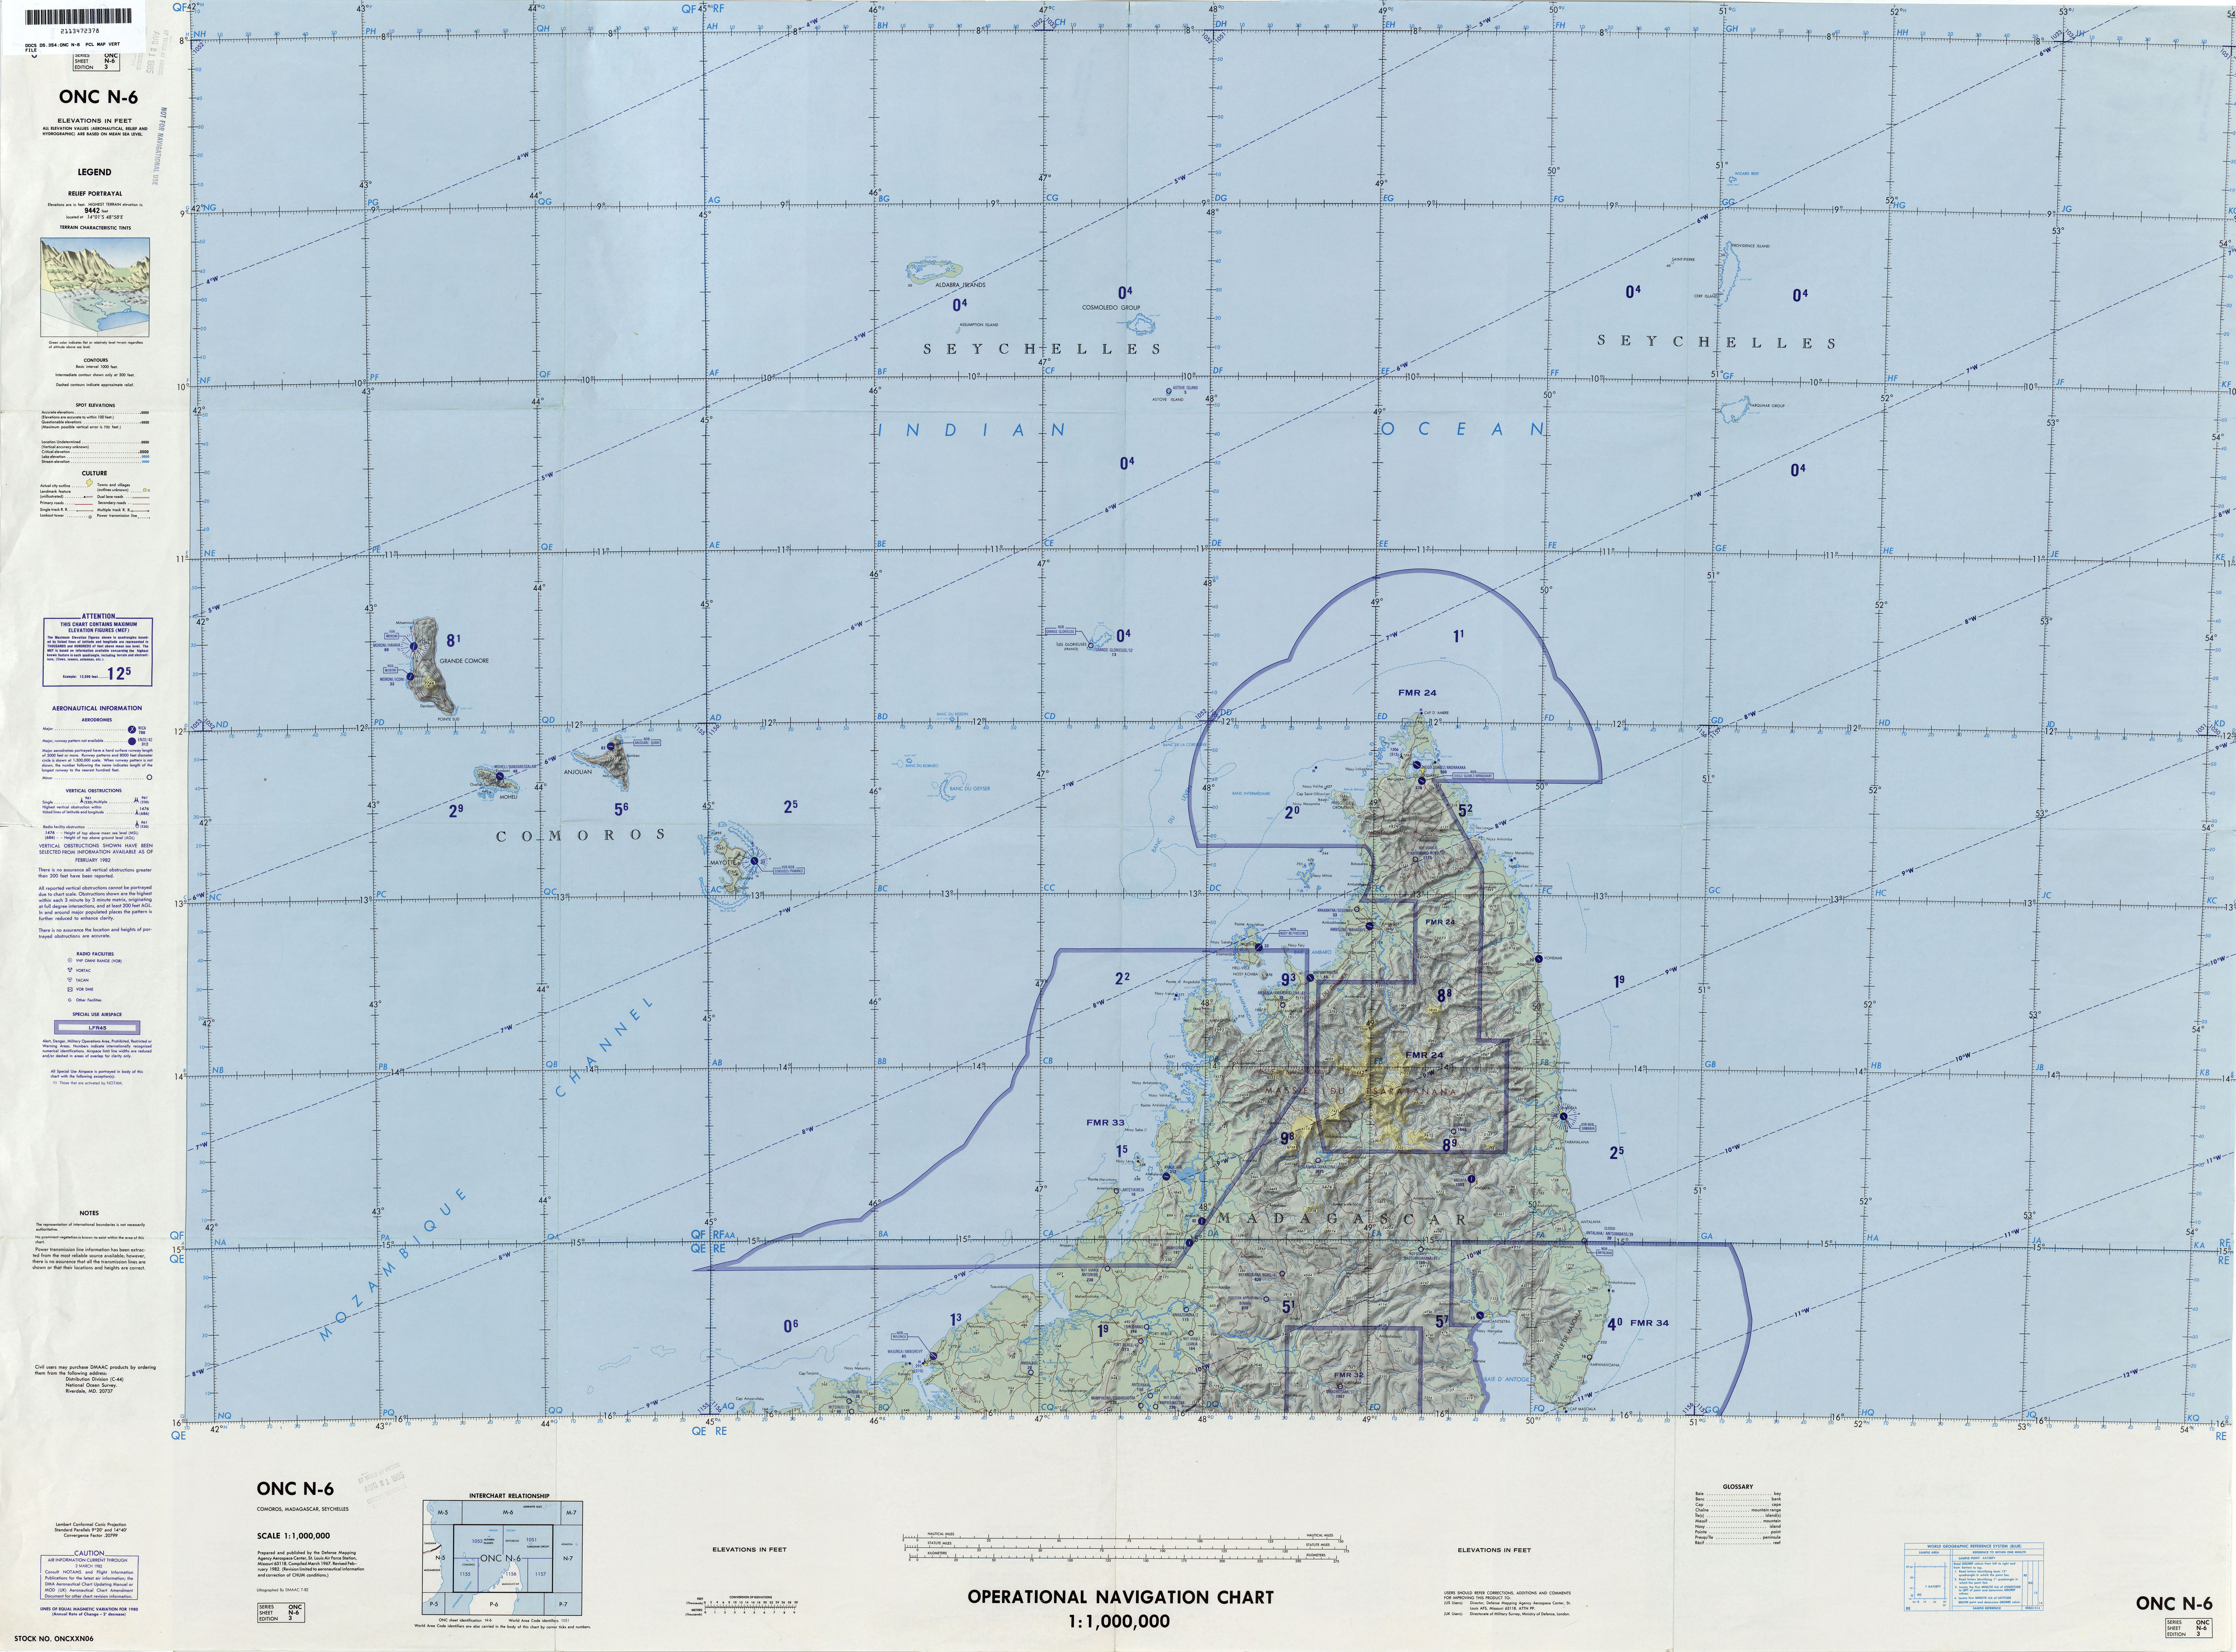 comoros operational navigation chart series